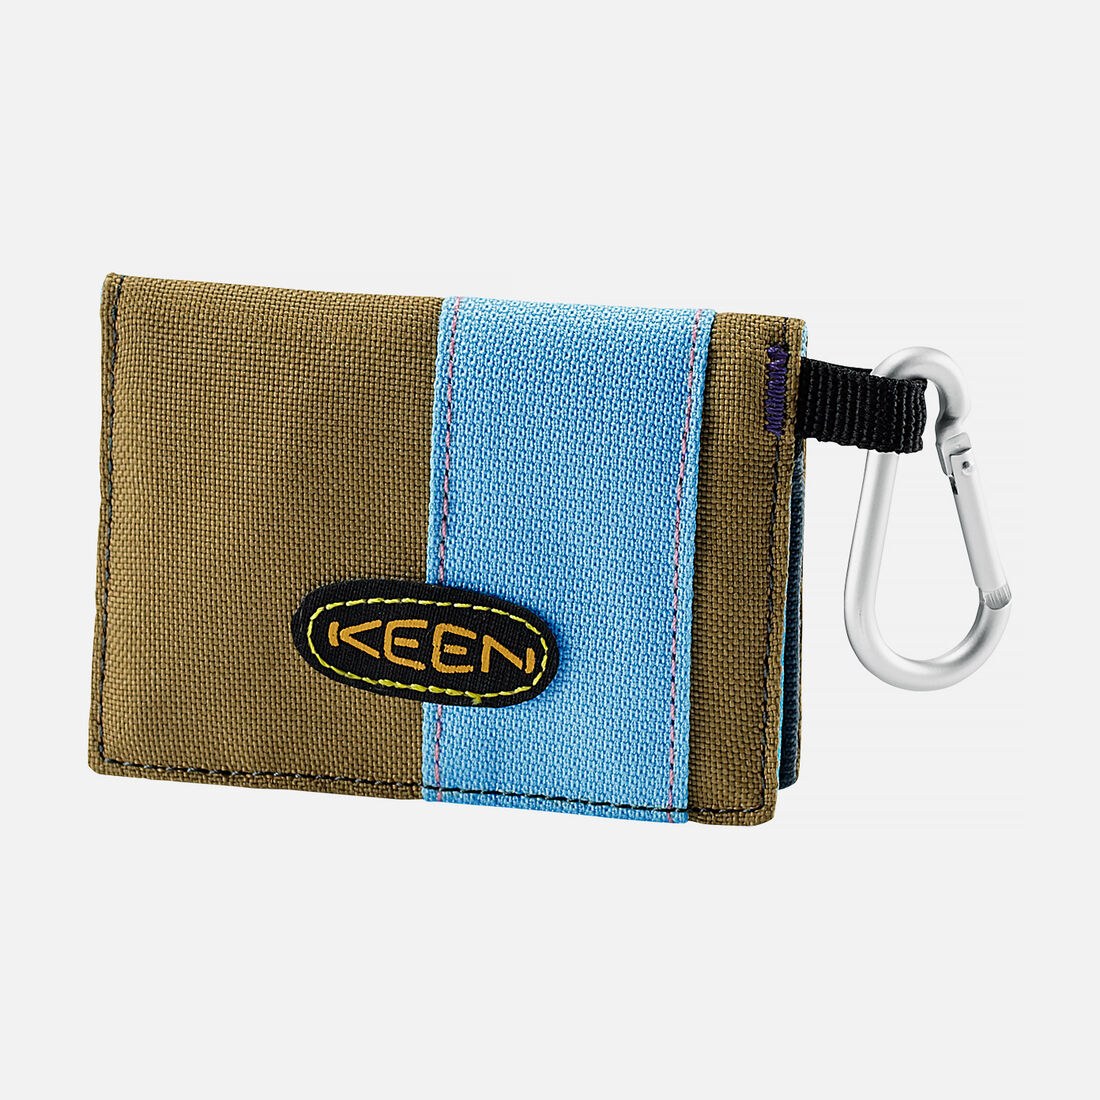 Keen Harvest Mini Wallet in  - large view.